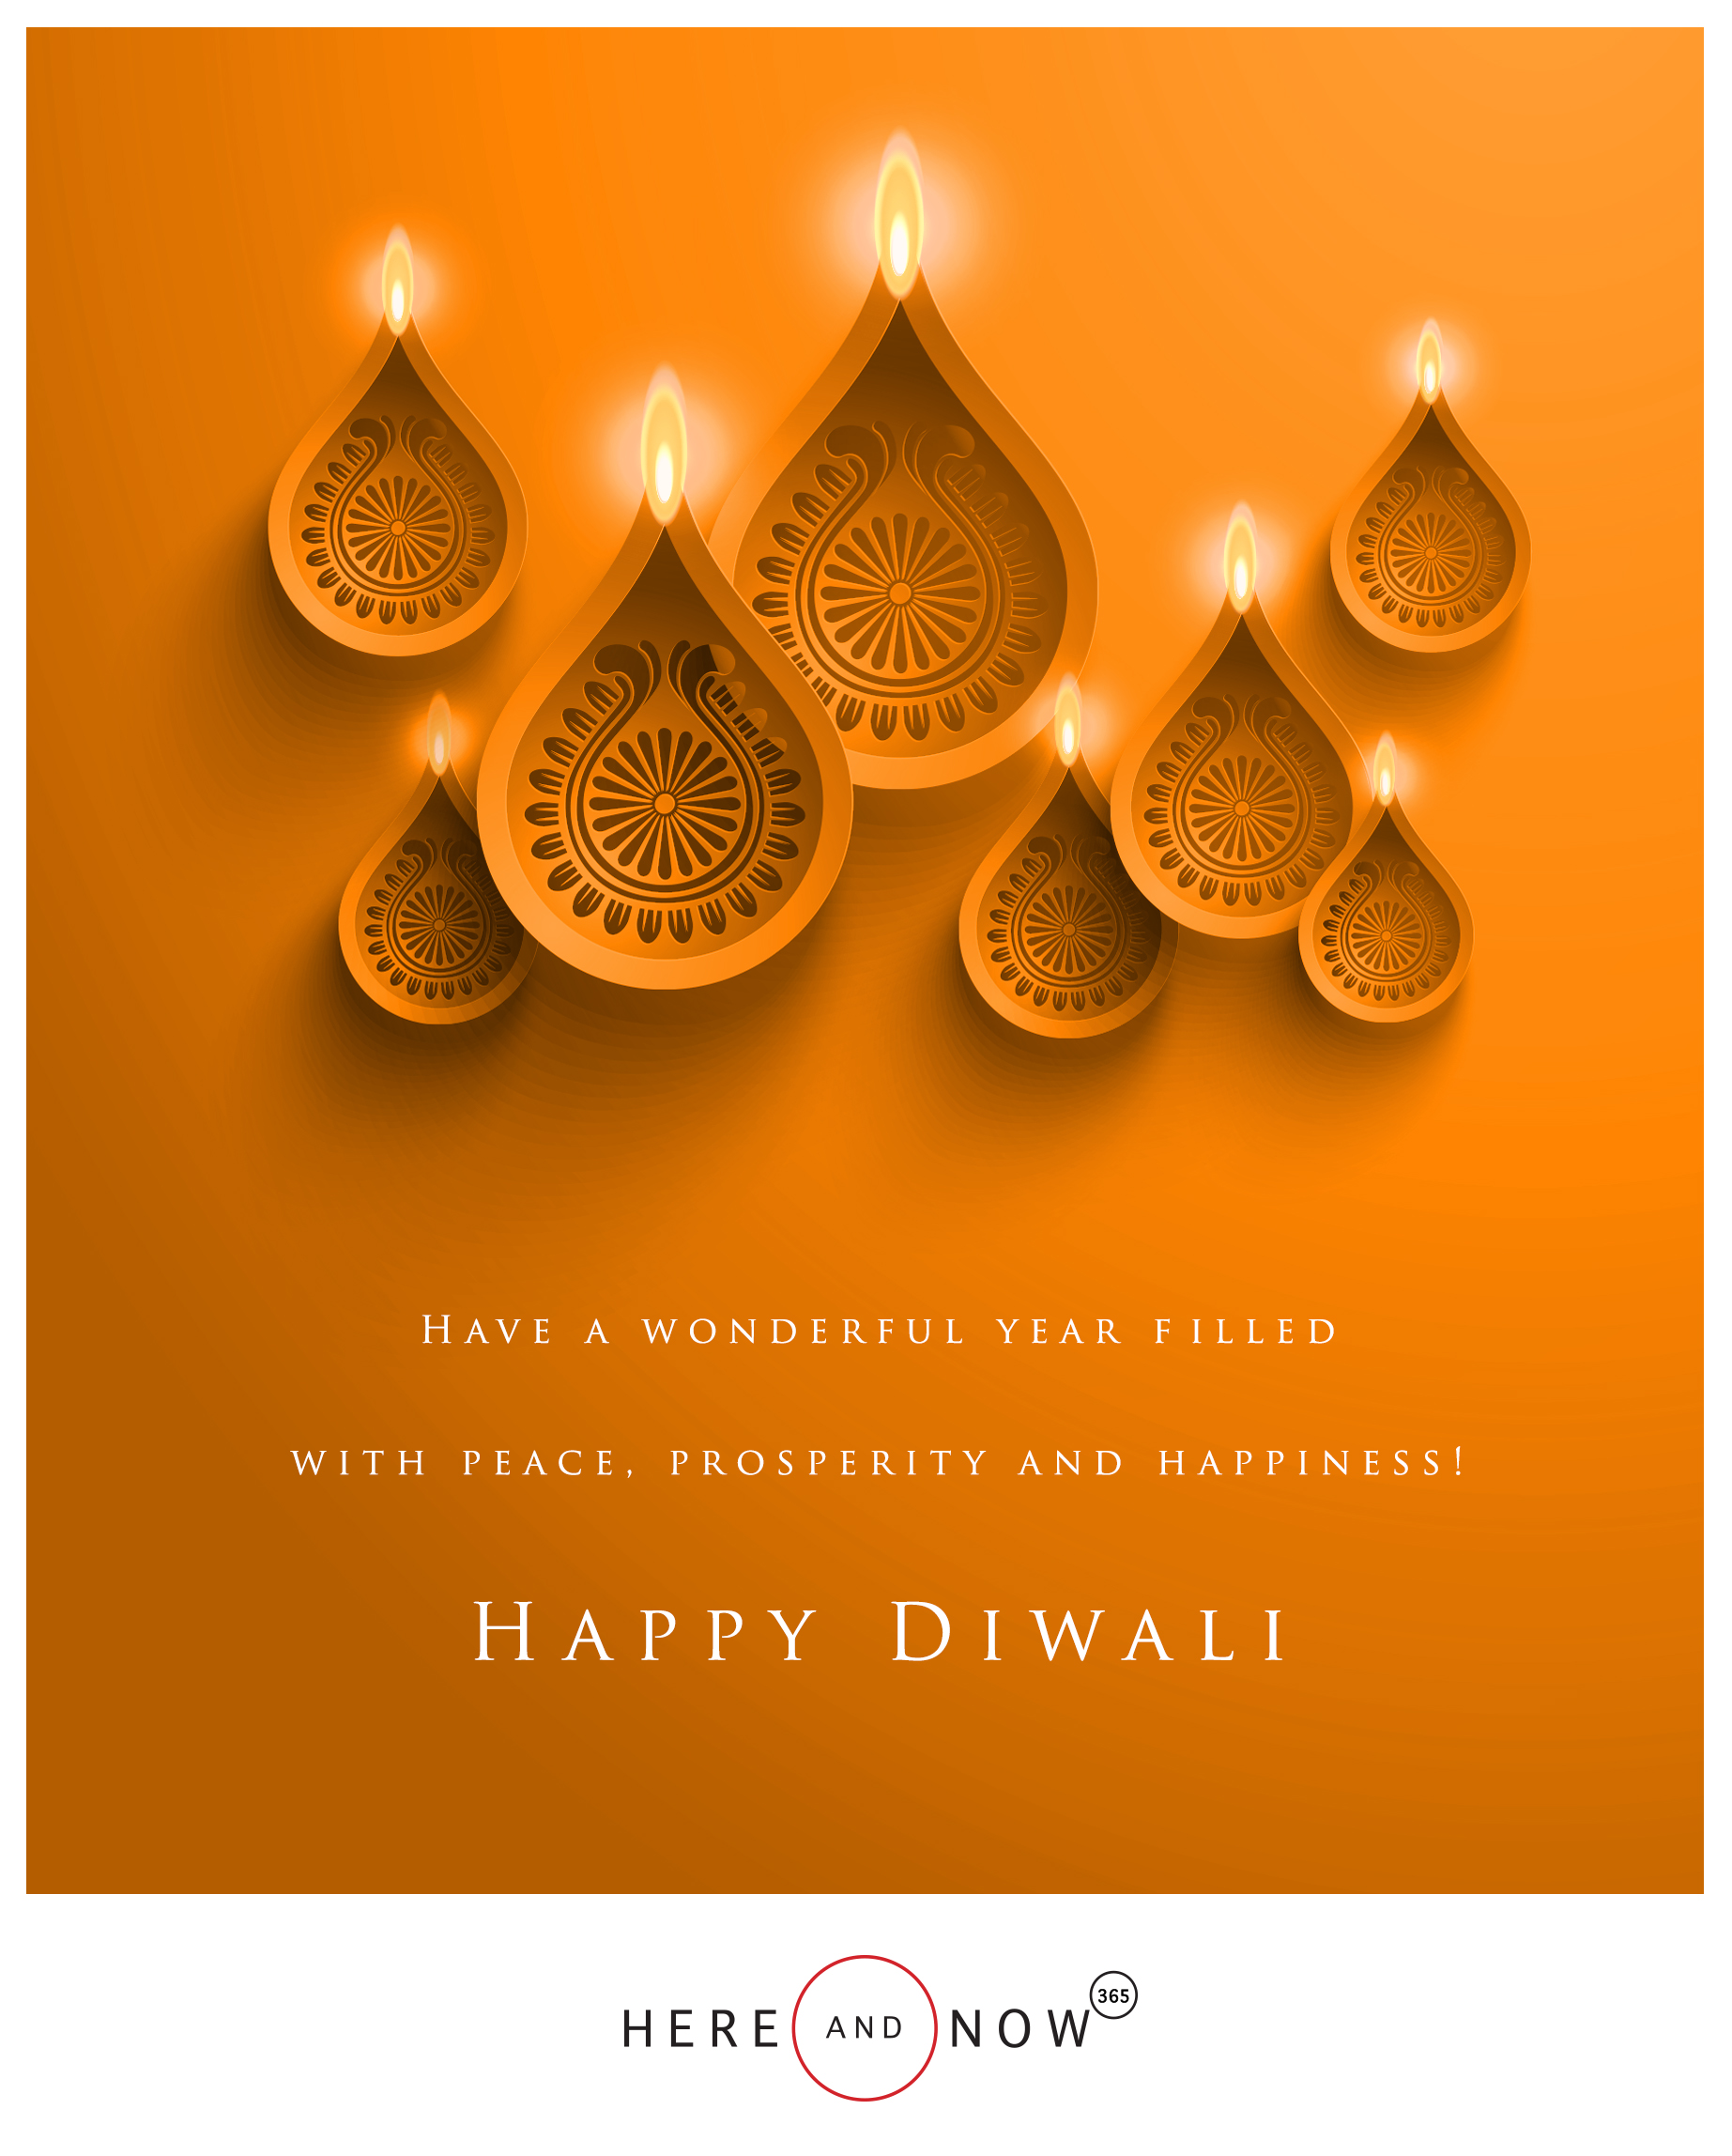 Happy diwali from the herenow365 team here and now defining diwali greeting 10102014 m4hsunfo